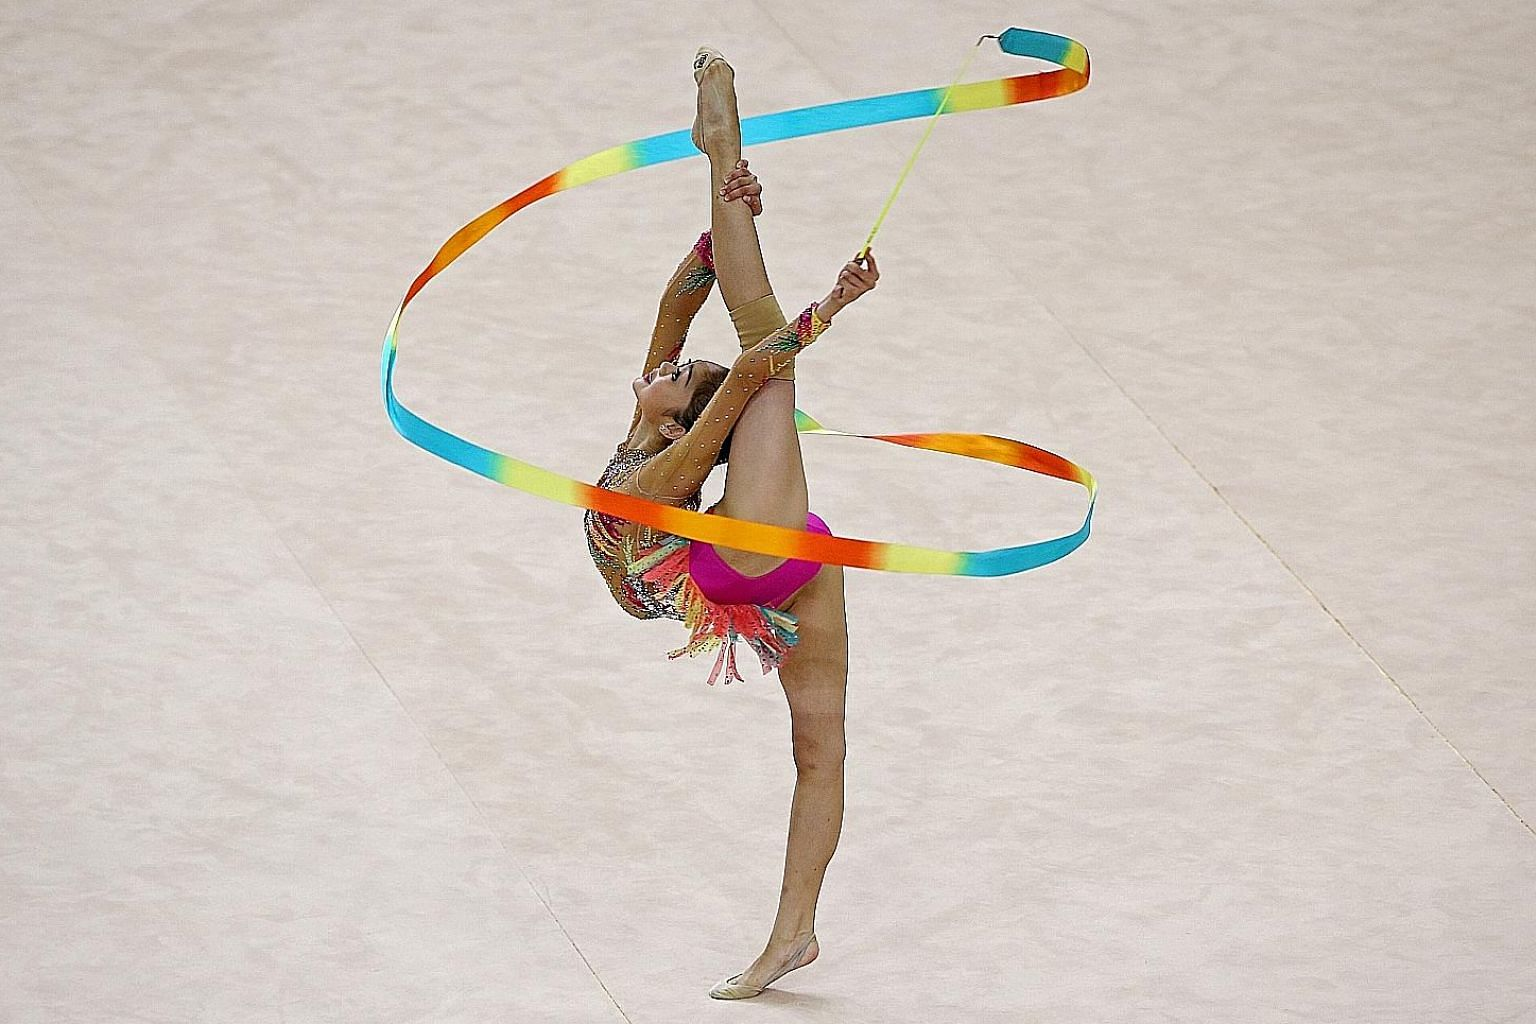 Malaysia's Izzah Amzan performing her ribbon routine at the Bishan Sports Hall. She scored 13.617 points in the final to win gold. The 17-year-old was the star of the Asean Schools Games rhythmic gymnastics competition, winning four golds.